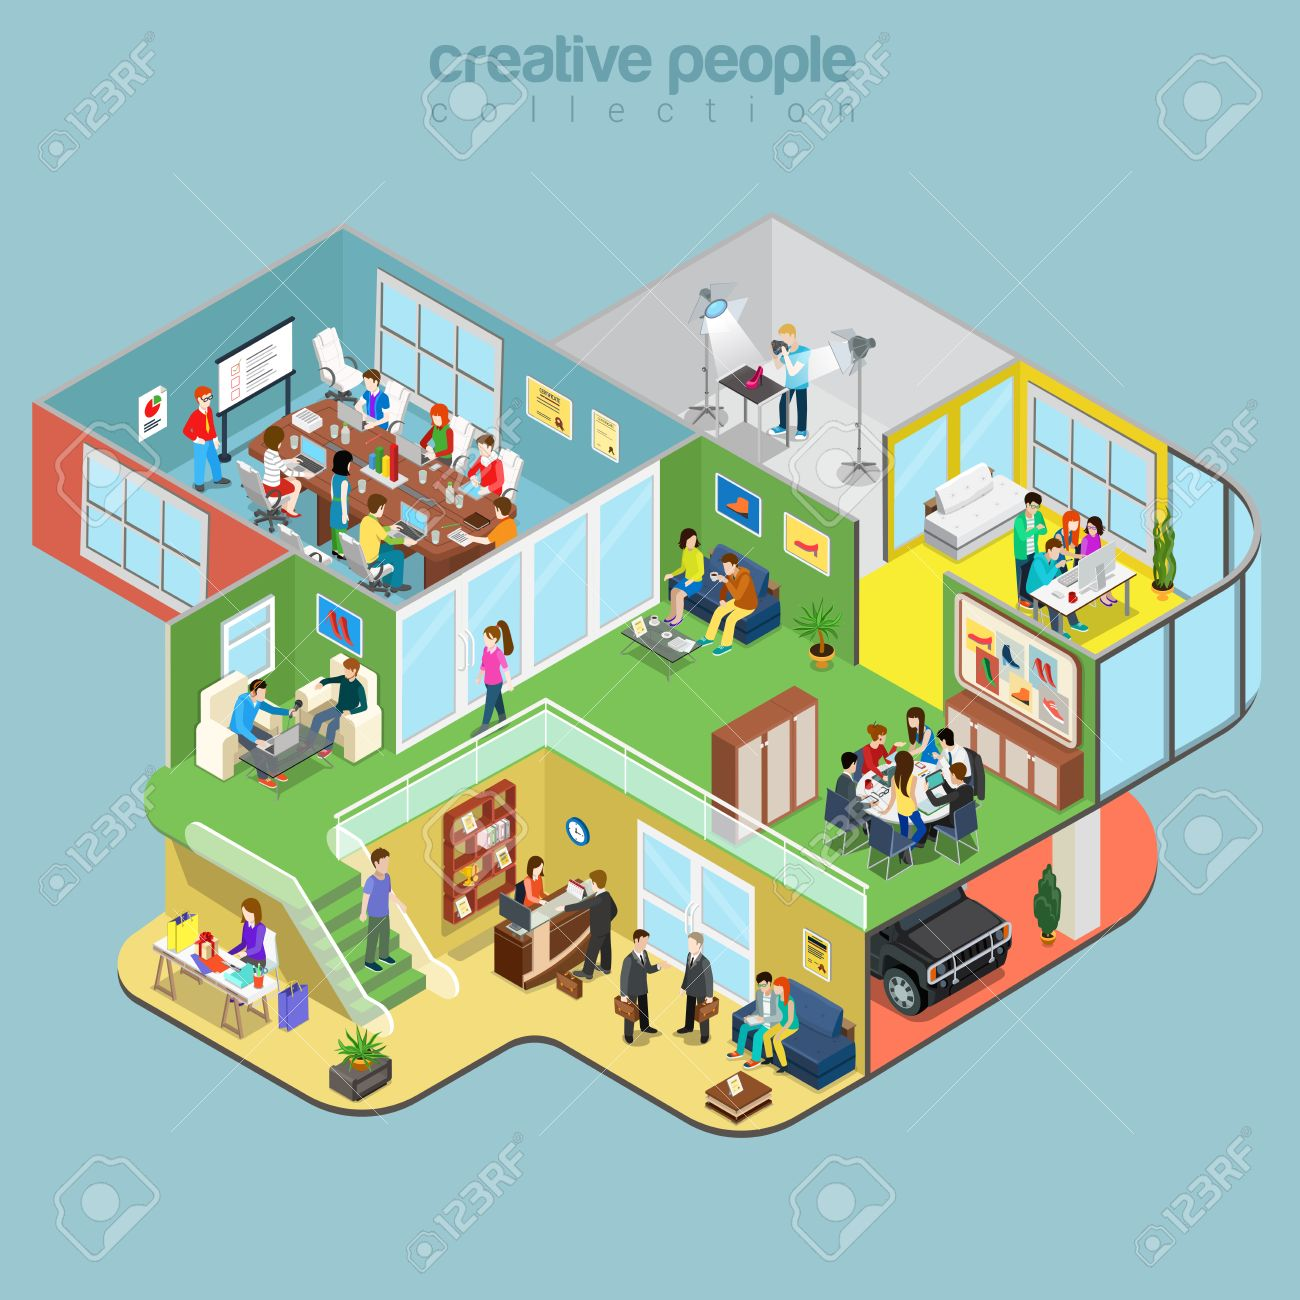 Flat isometric Creative Workshop office floors interior, company departments with staff vector illustration. 3d isometry Architecture, Teamwork concept. Director, designer, manager, client, reception. - 64110930